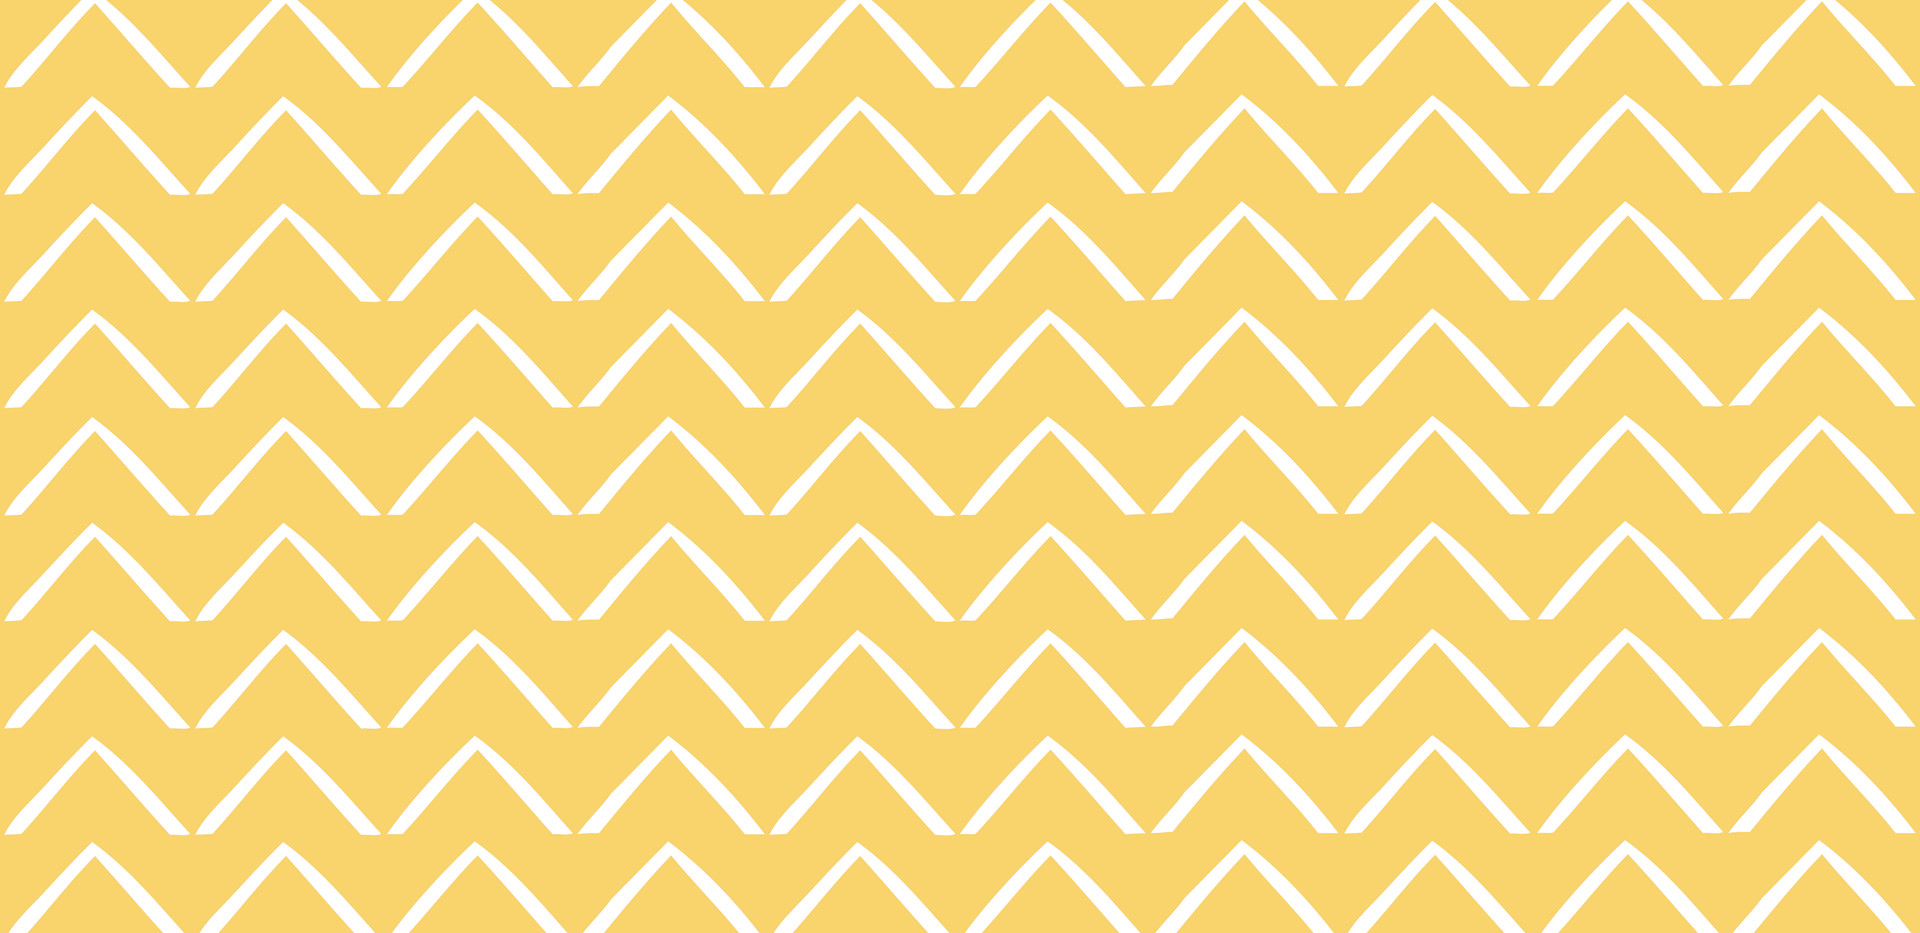 ZigZag Arrows . Perfect Yellow